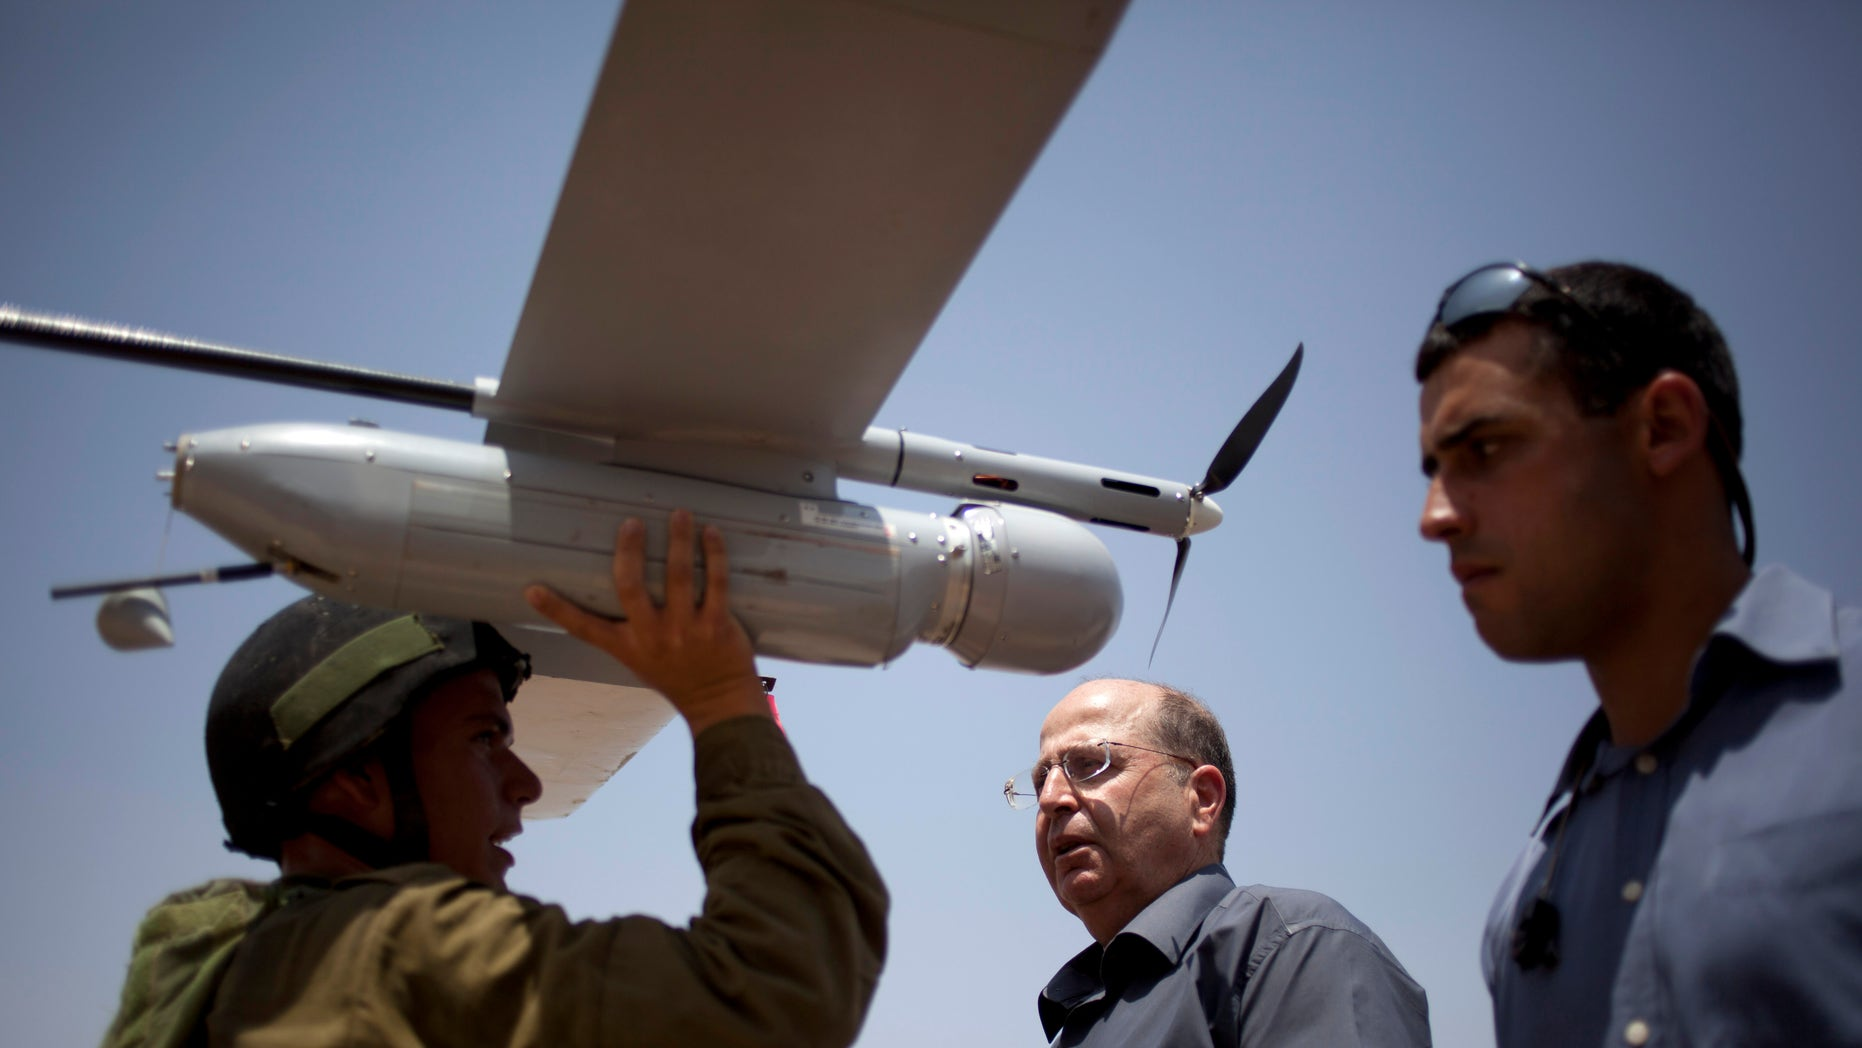 "File - In this July 9, 2013 file photo, an Israeli soldier holds up a Skylark I (Rochev Shamayim) unmanned drone as part of a demonstration for Israel's Defense Minister Moshe Yaalon, center, in an urban warfare army training facility, near Zeelim, southern Israel. Yaalon said Tuesday Dec. 3, 2013,  that Israel is transferring food, including baby food, as well as water and other ""basic needs"" to Syria. (AP Photo/Ariel Schalit, File)"